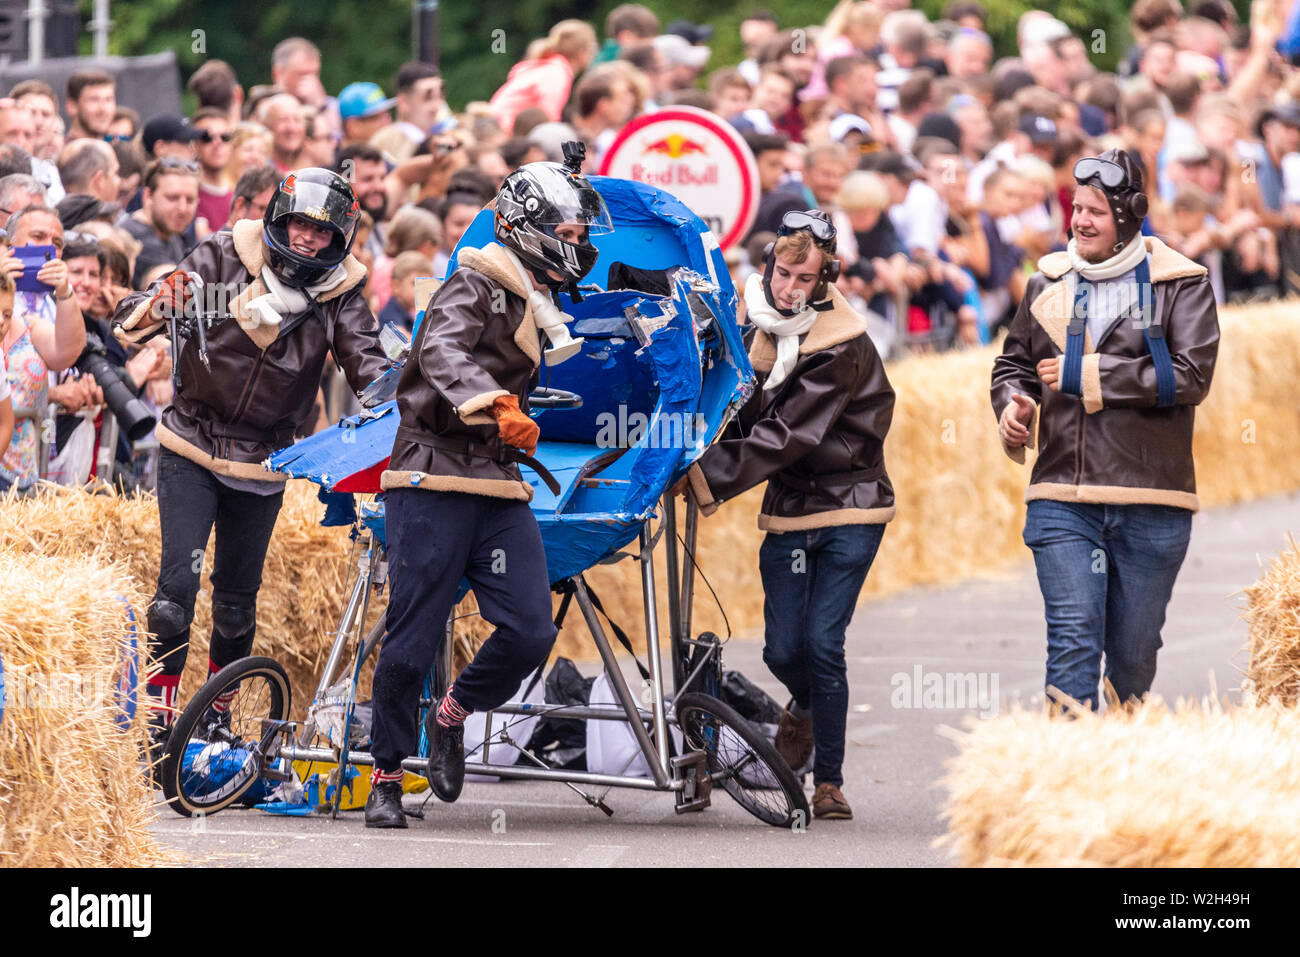 Mighty Magnificent Men competing in the Red Bull Soapbox